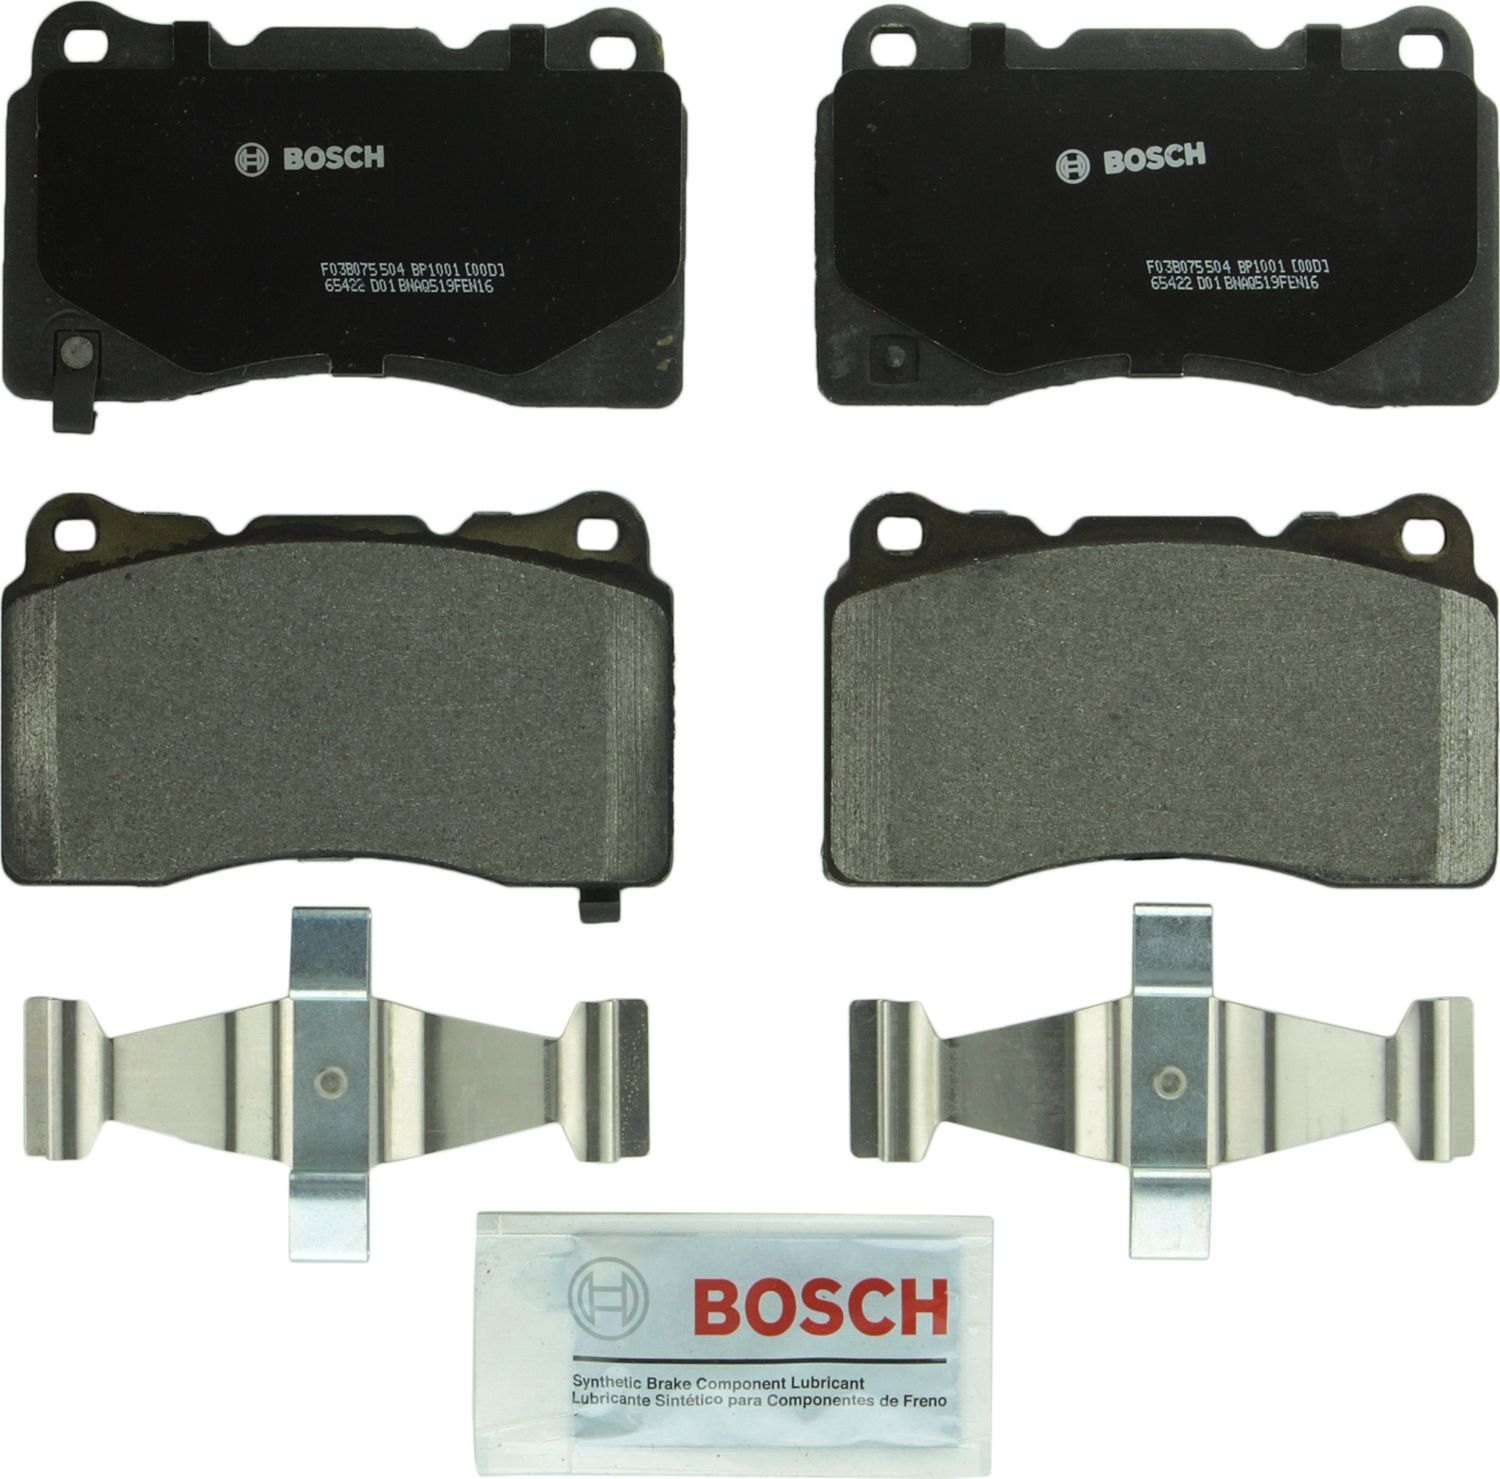 BOSCH BRAKE - Bosch Quietcast Pads W/ Hardware - BQC BP1001